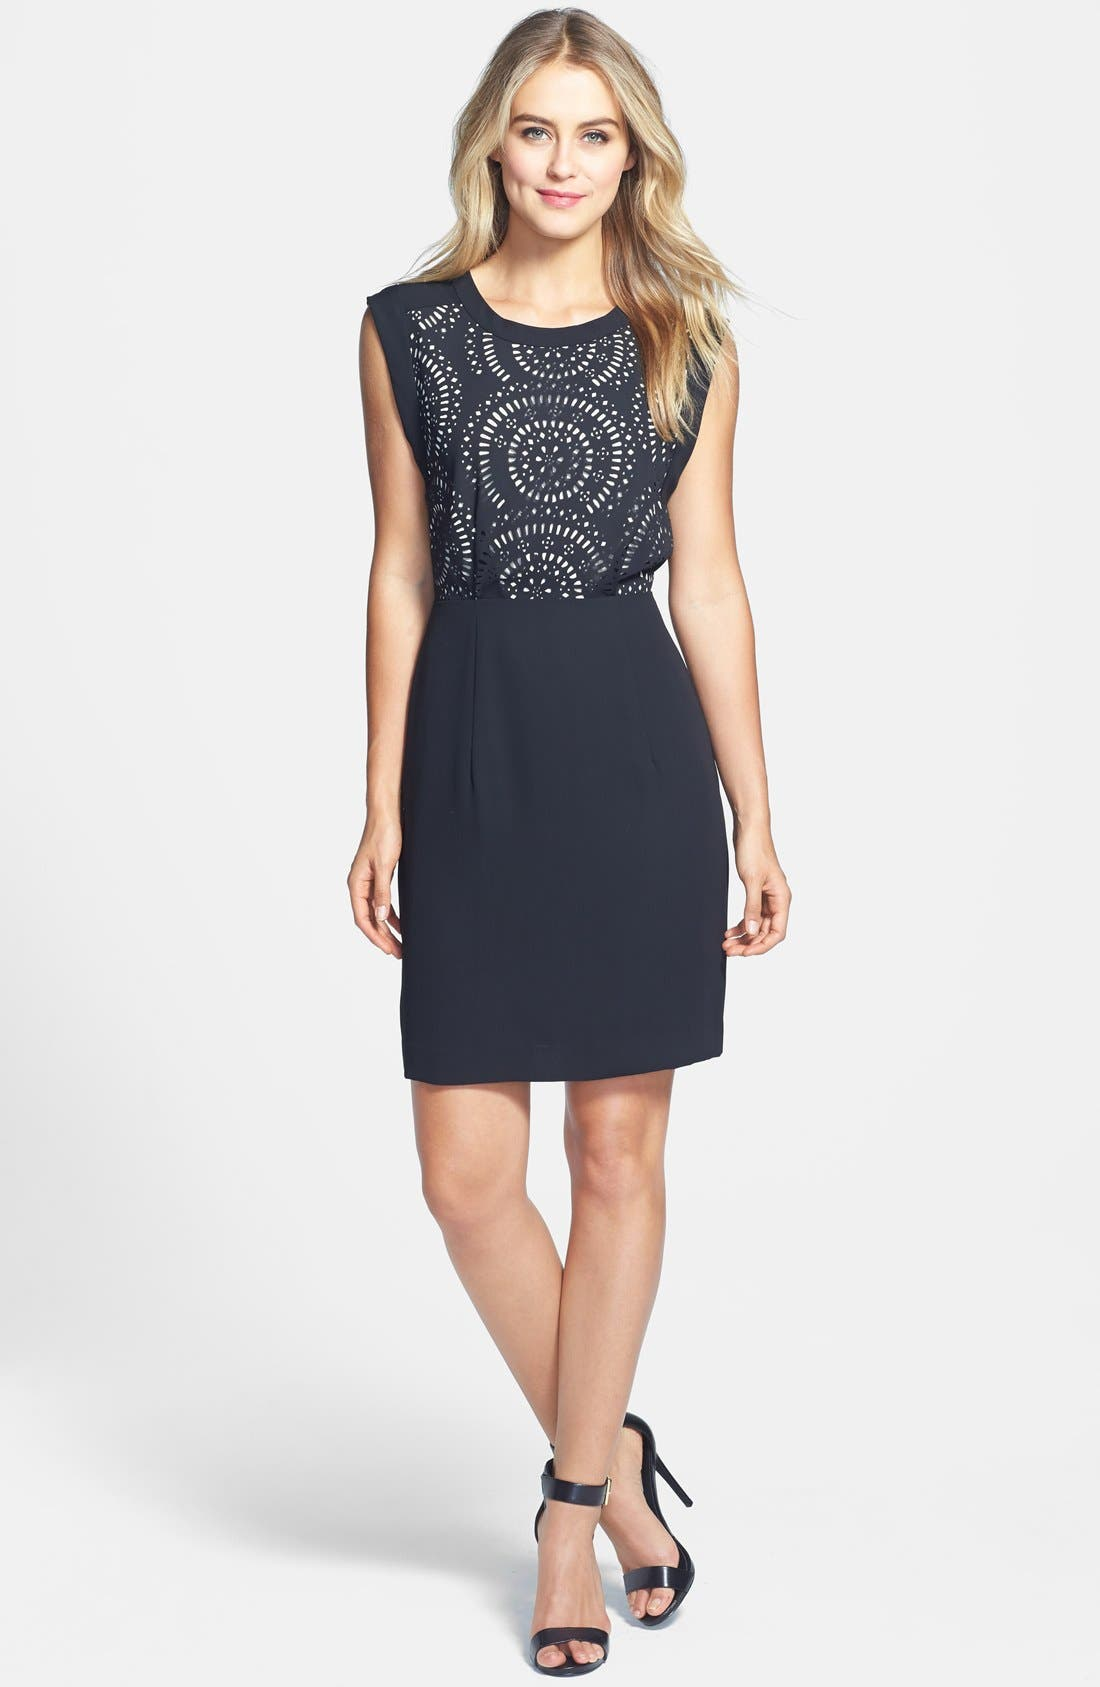 Main Image - Vince Camuto Laser Cut Dress